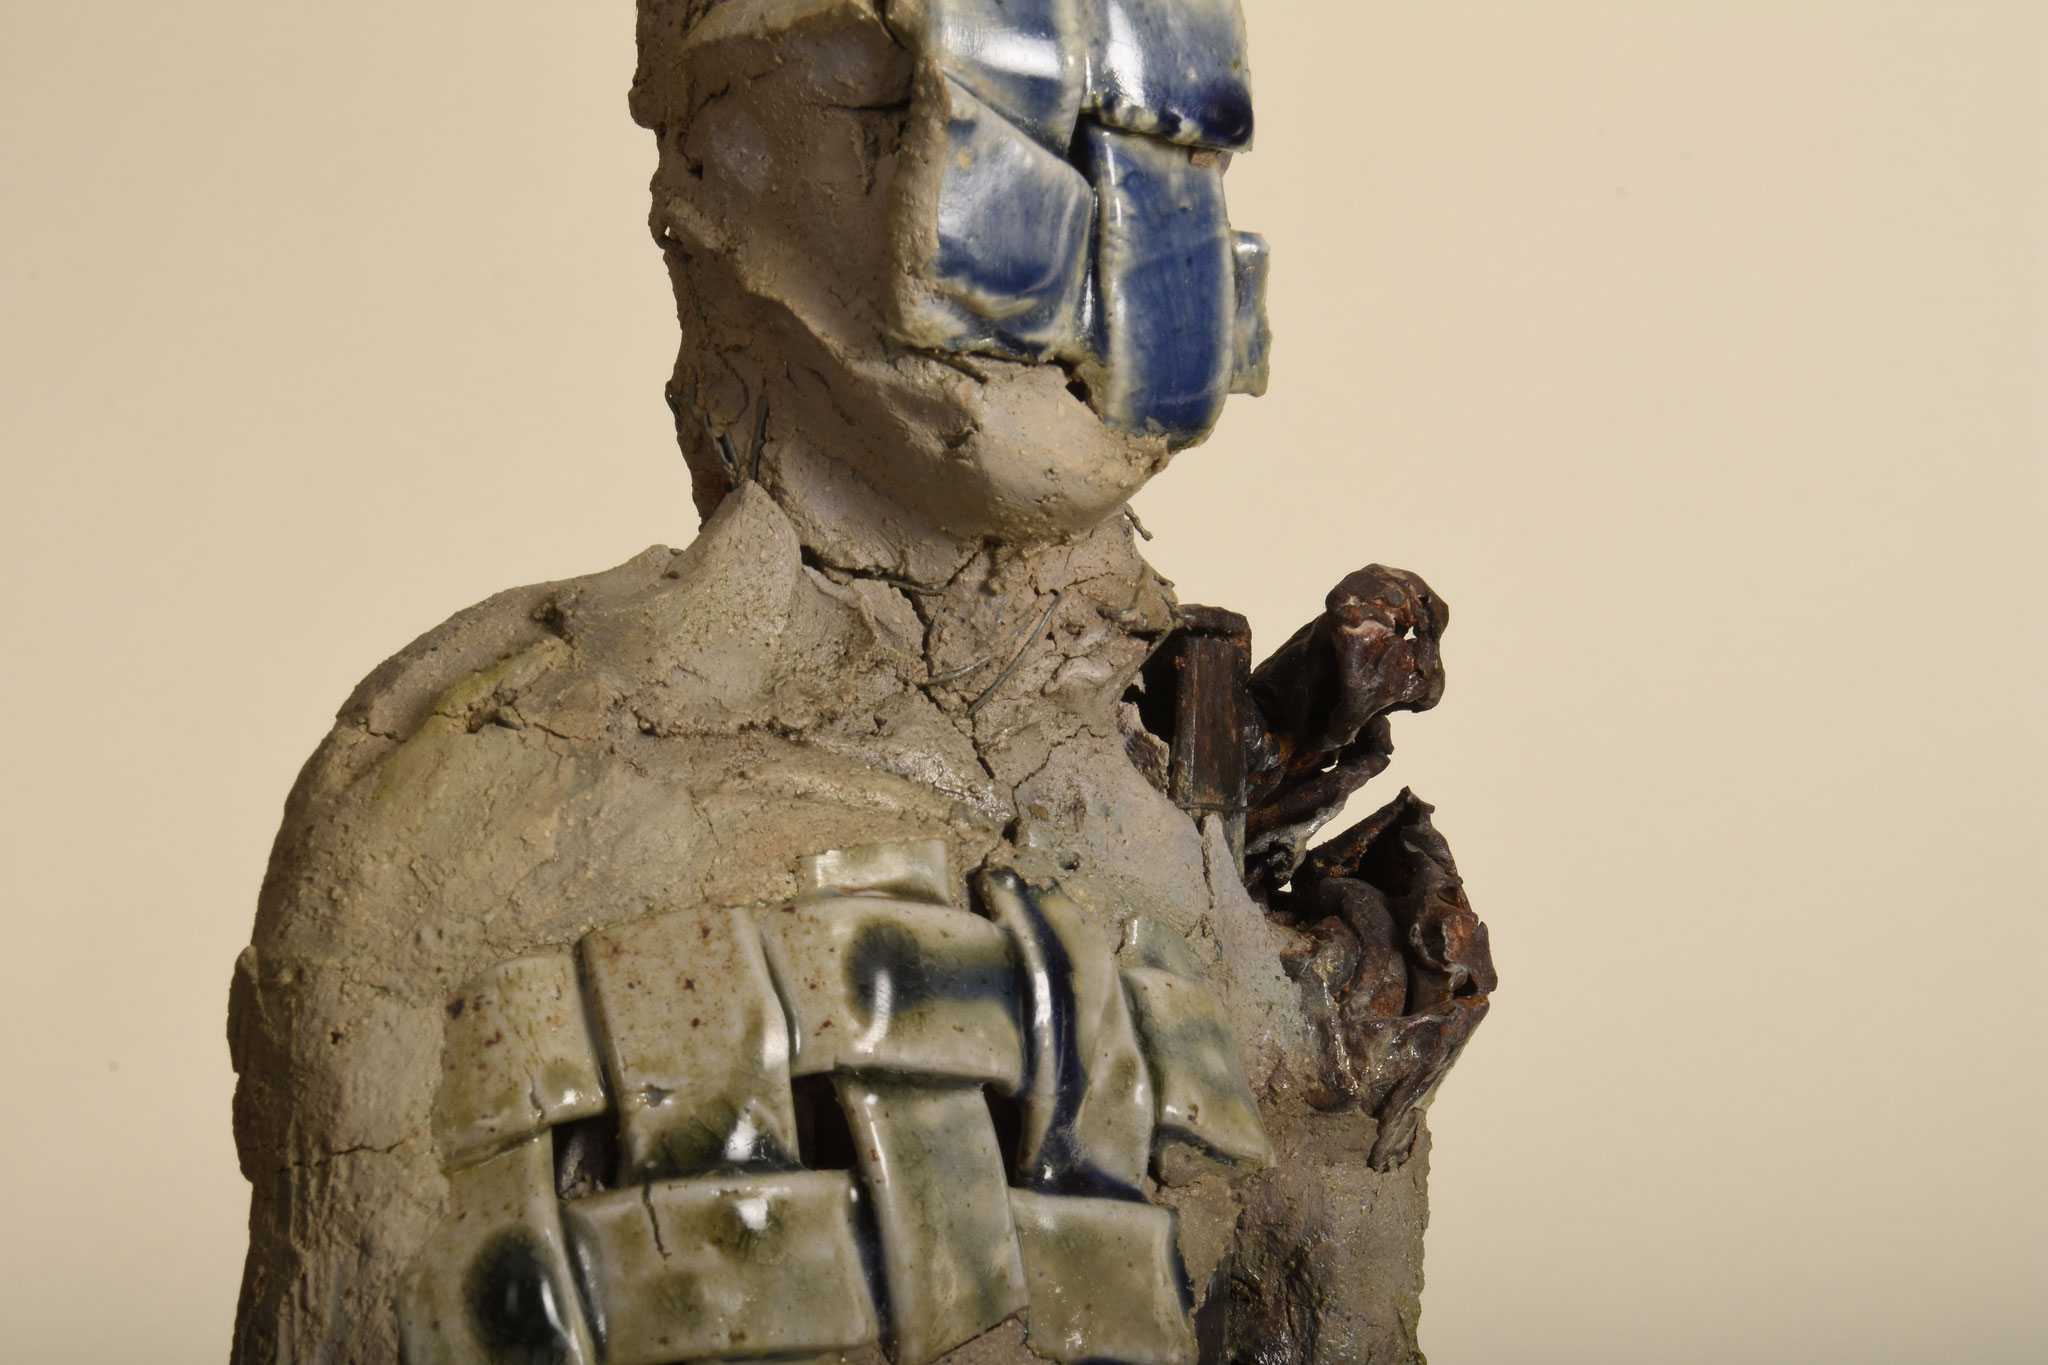 Bluefaced Man  2014  Metall, Ton, glasierte Keramik,  H: 98cm